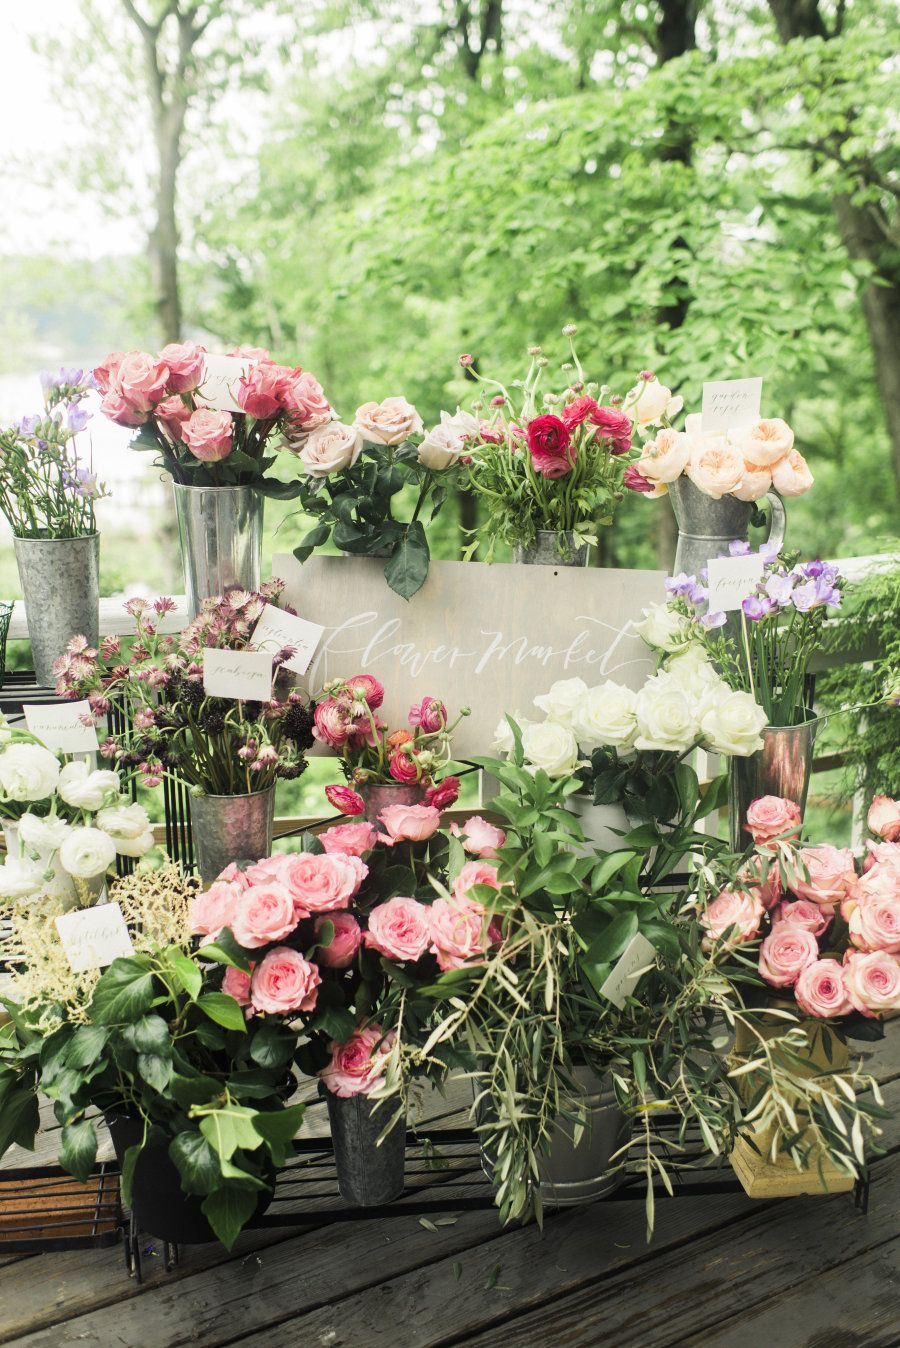 How to Throw a Baby Shower Any Mom-To-Be Will Love | Flower stands ...